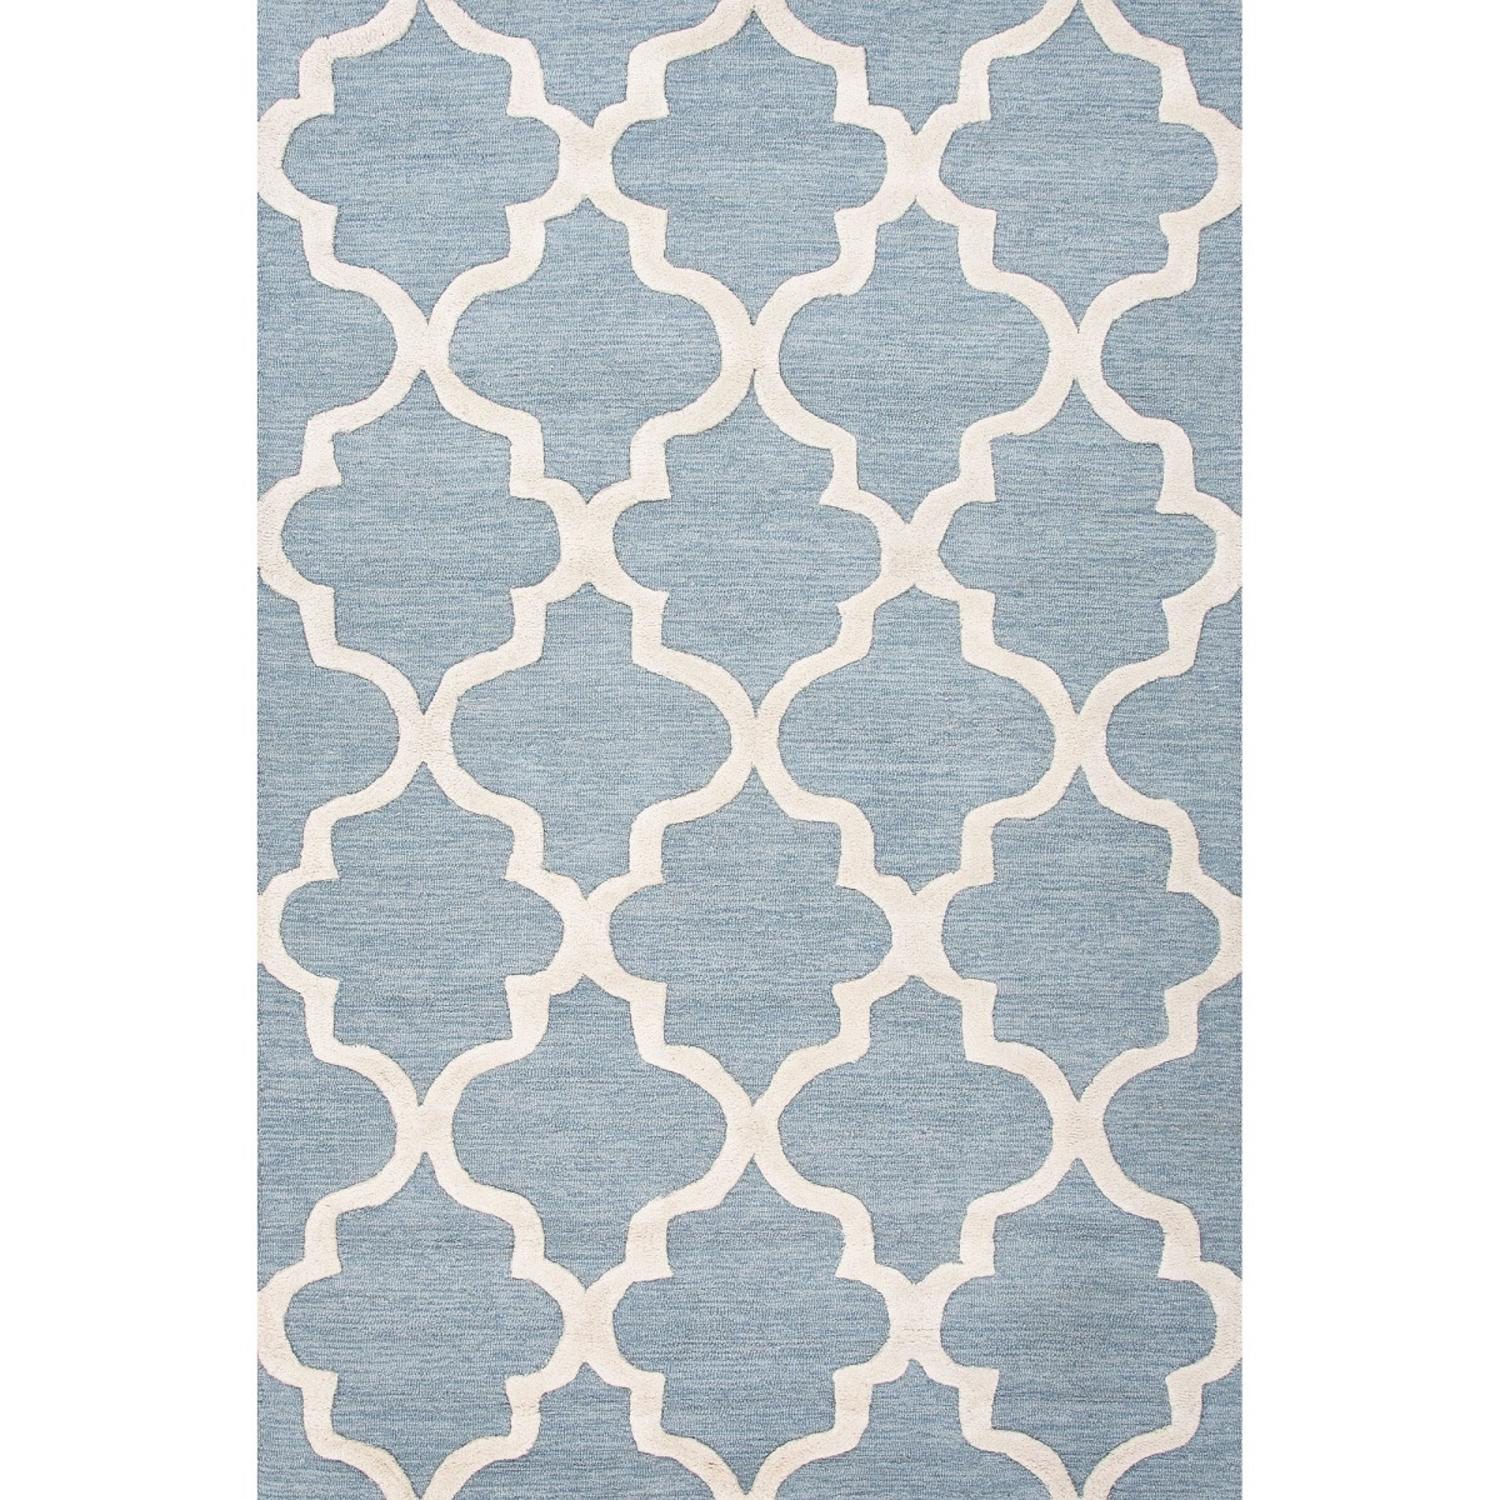 8' x 11' Blue Gray and Snow White Modern Miami Hand Tufted Wool Area Throw Rug